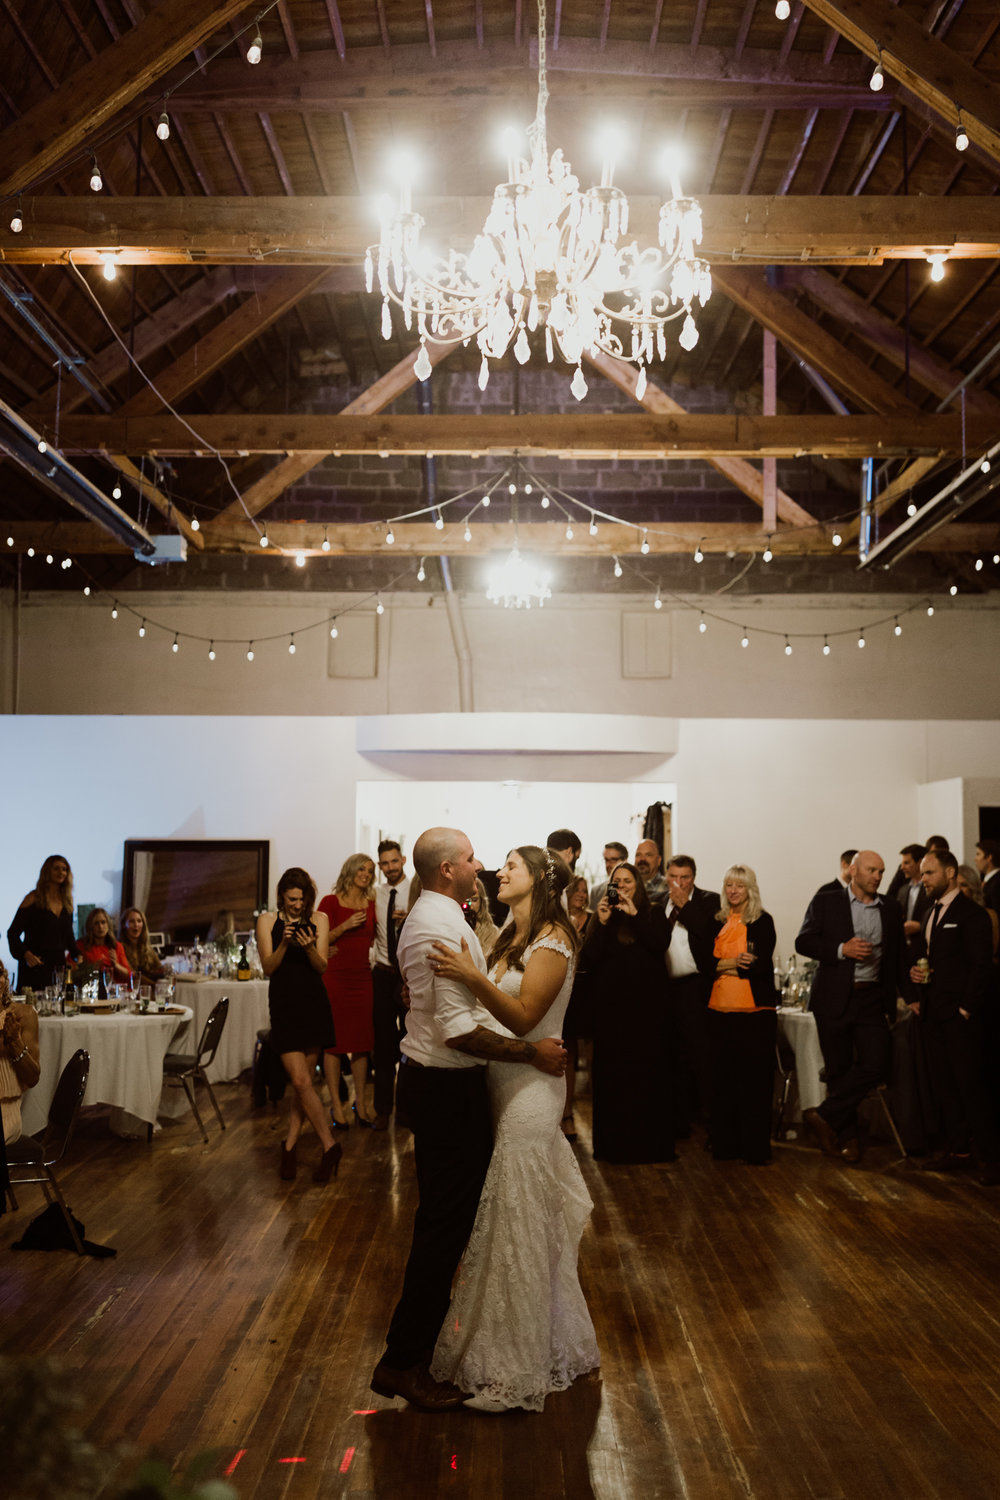 buena-vista-orpheum-theatre-loft-wedding-32.jpg